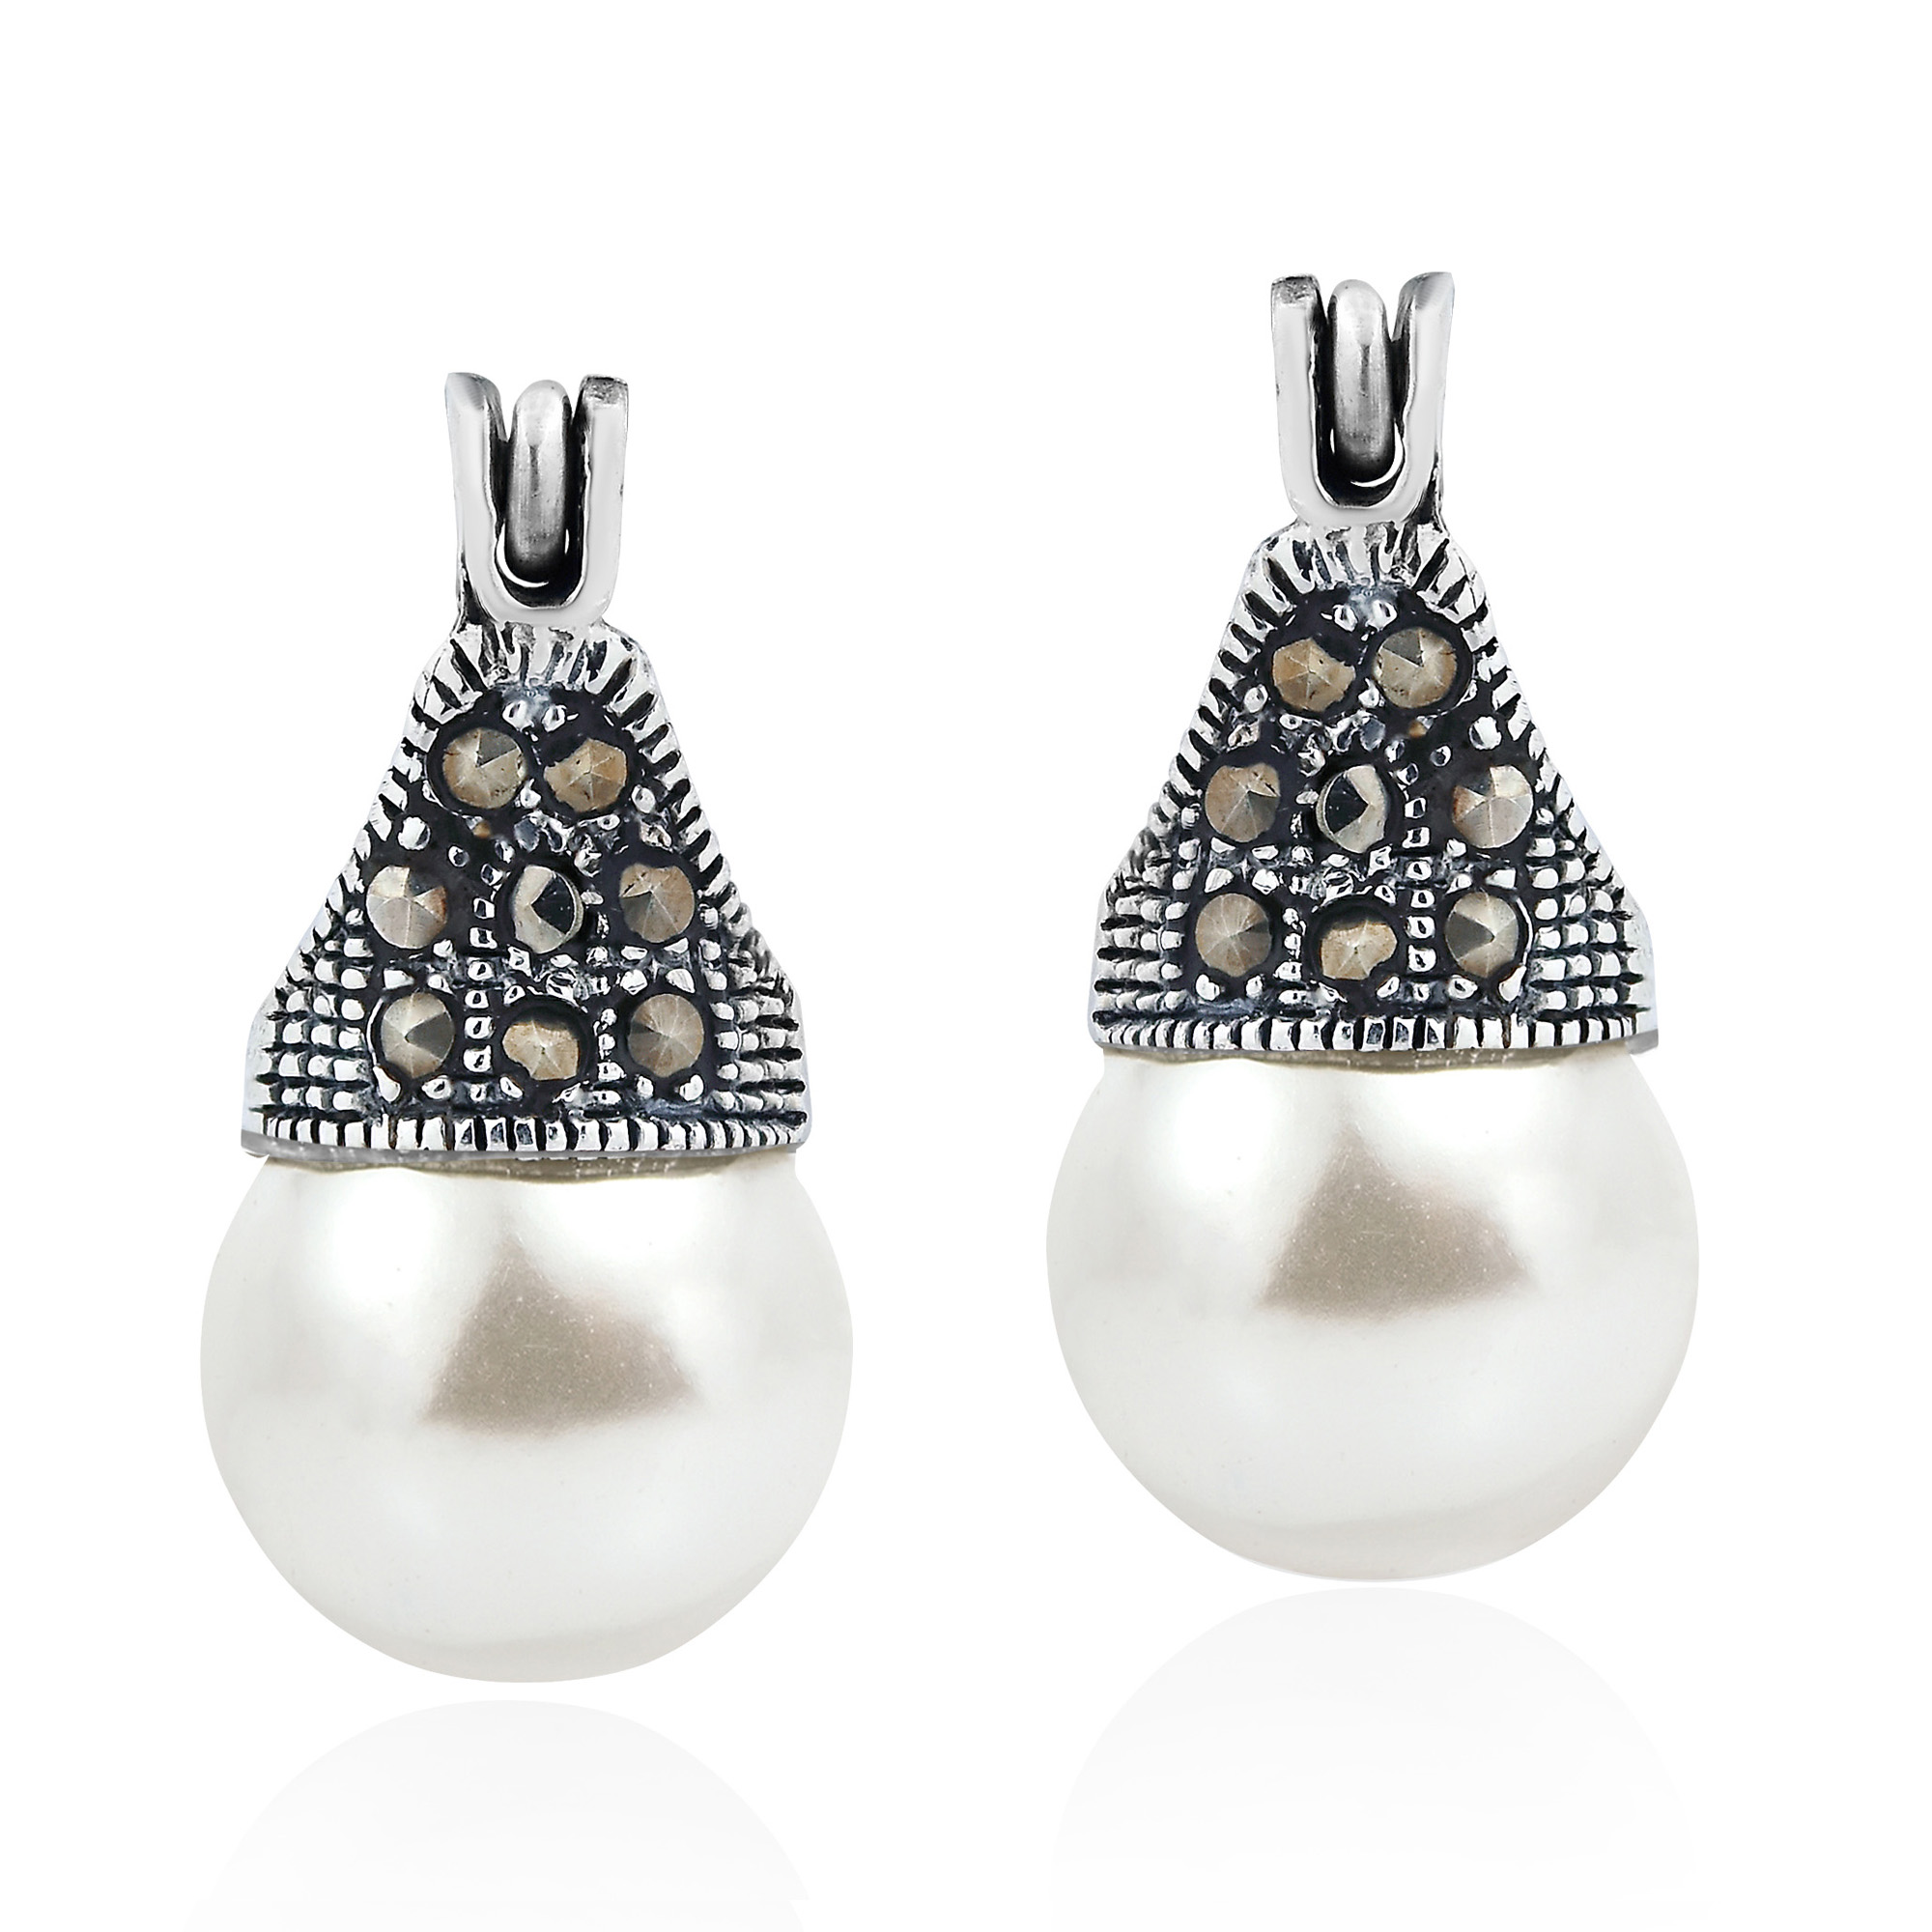 These Beautiful Dangle Earrings Will Make A Stylish Addition To Any Wardrobe This Unique And Vintage Design Features Colored Faux Pearl Depending On